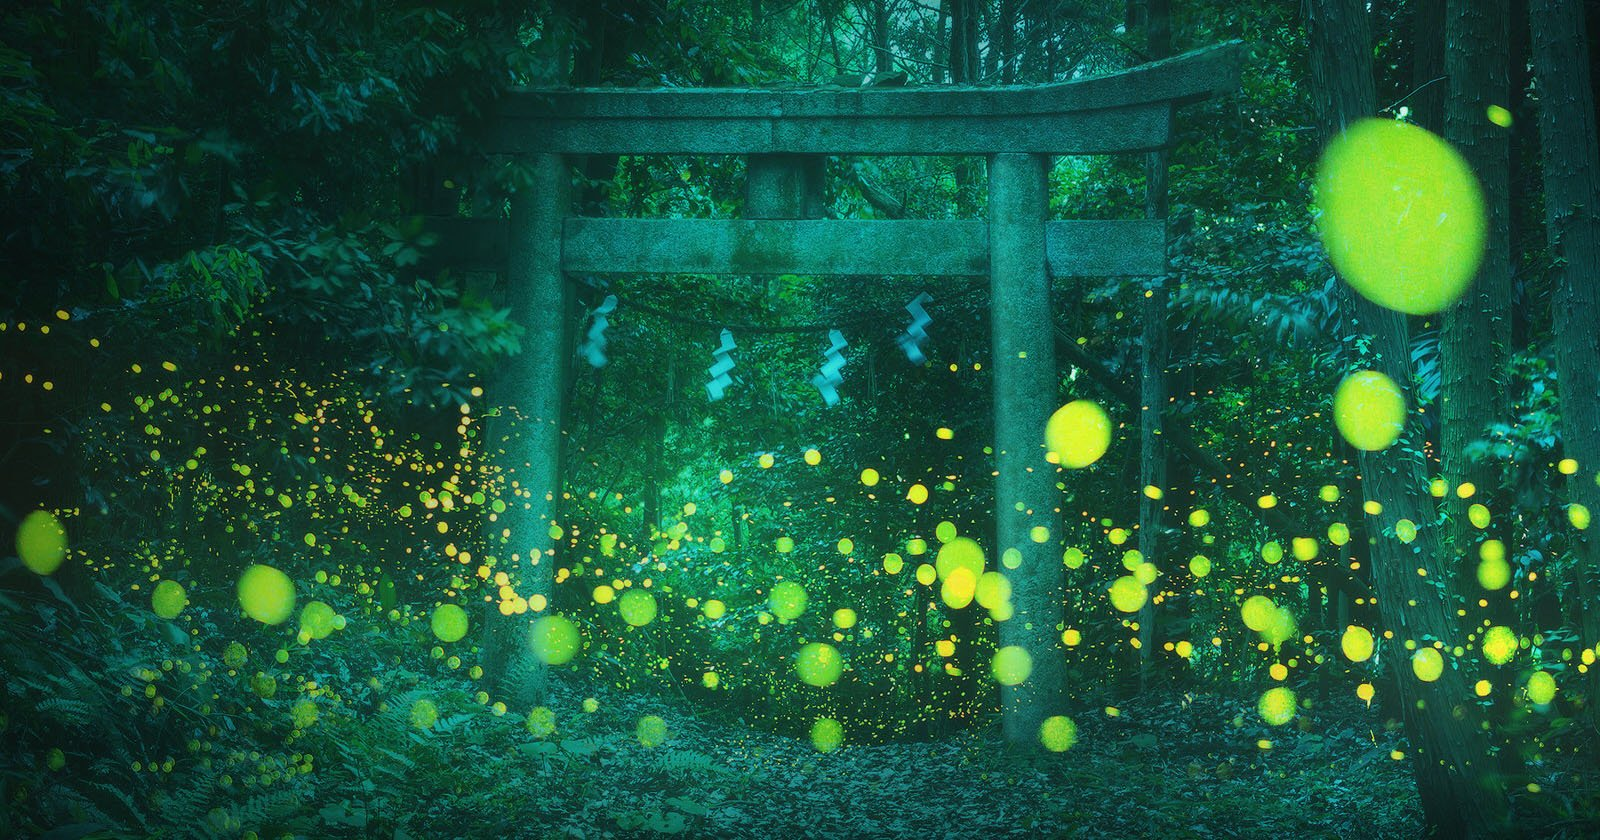 These Photos of Fireflies in Japan are Magical